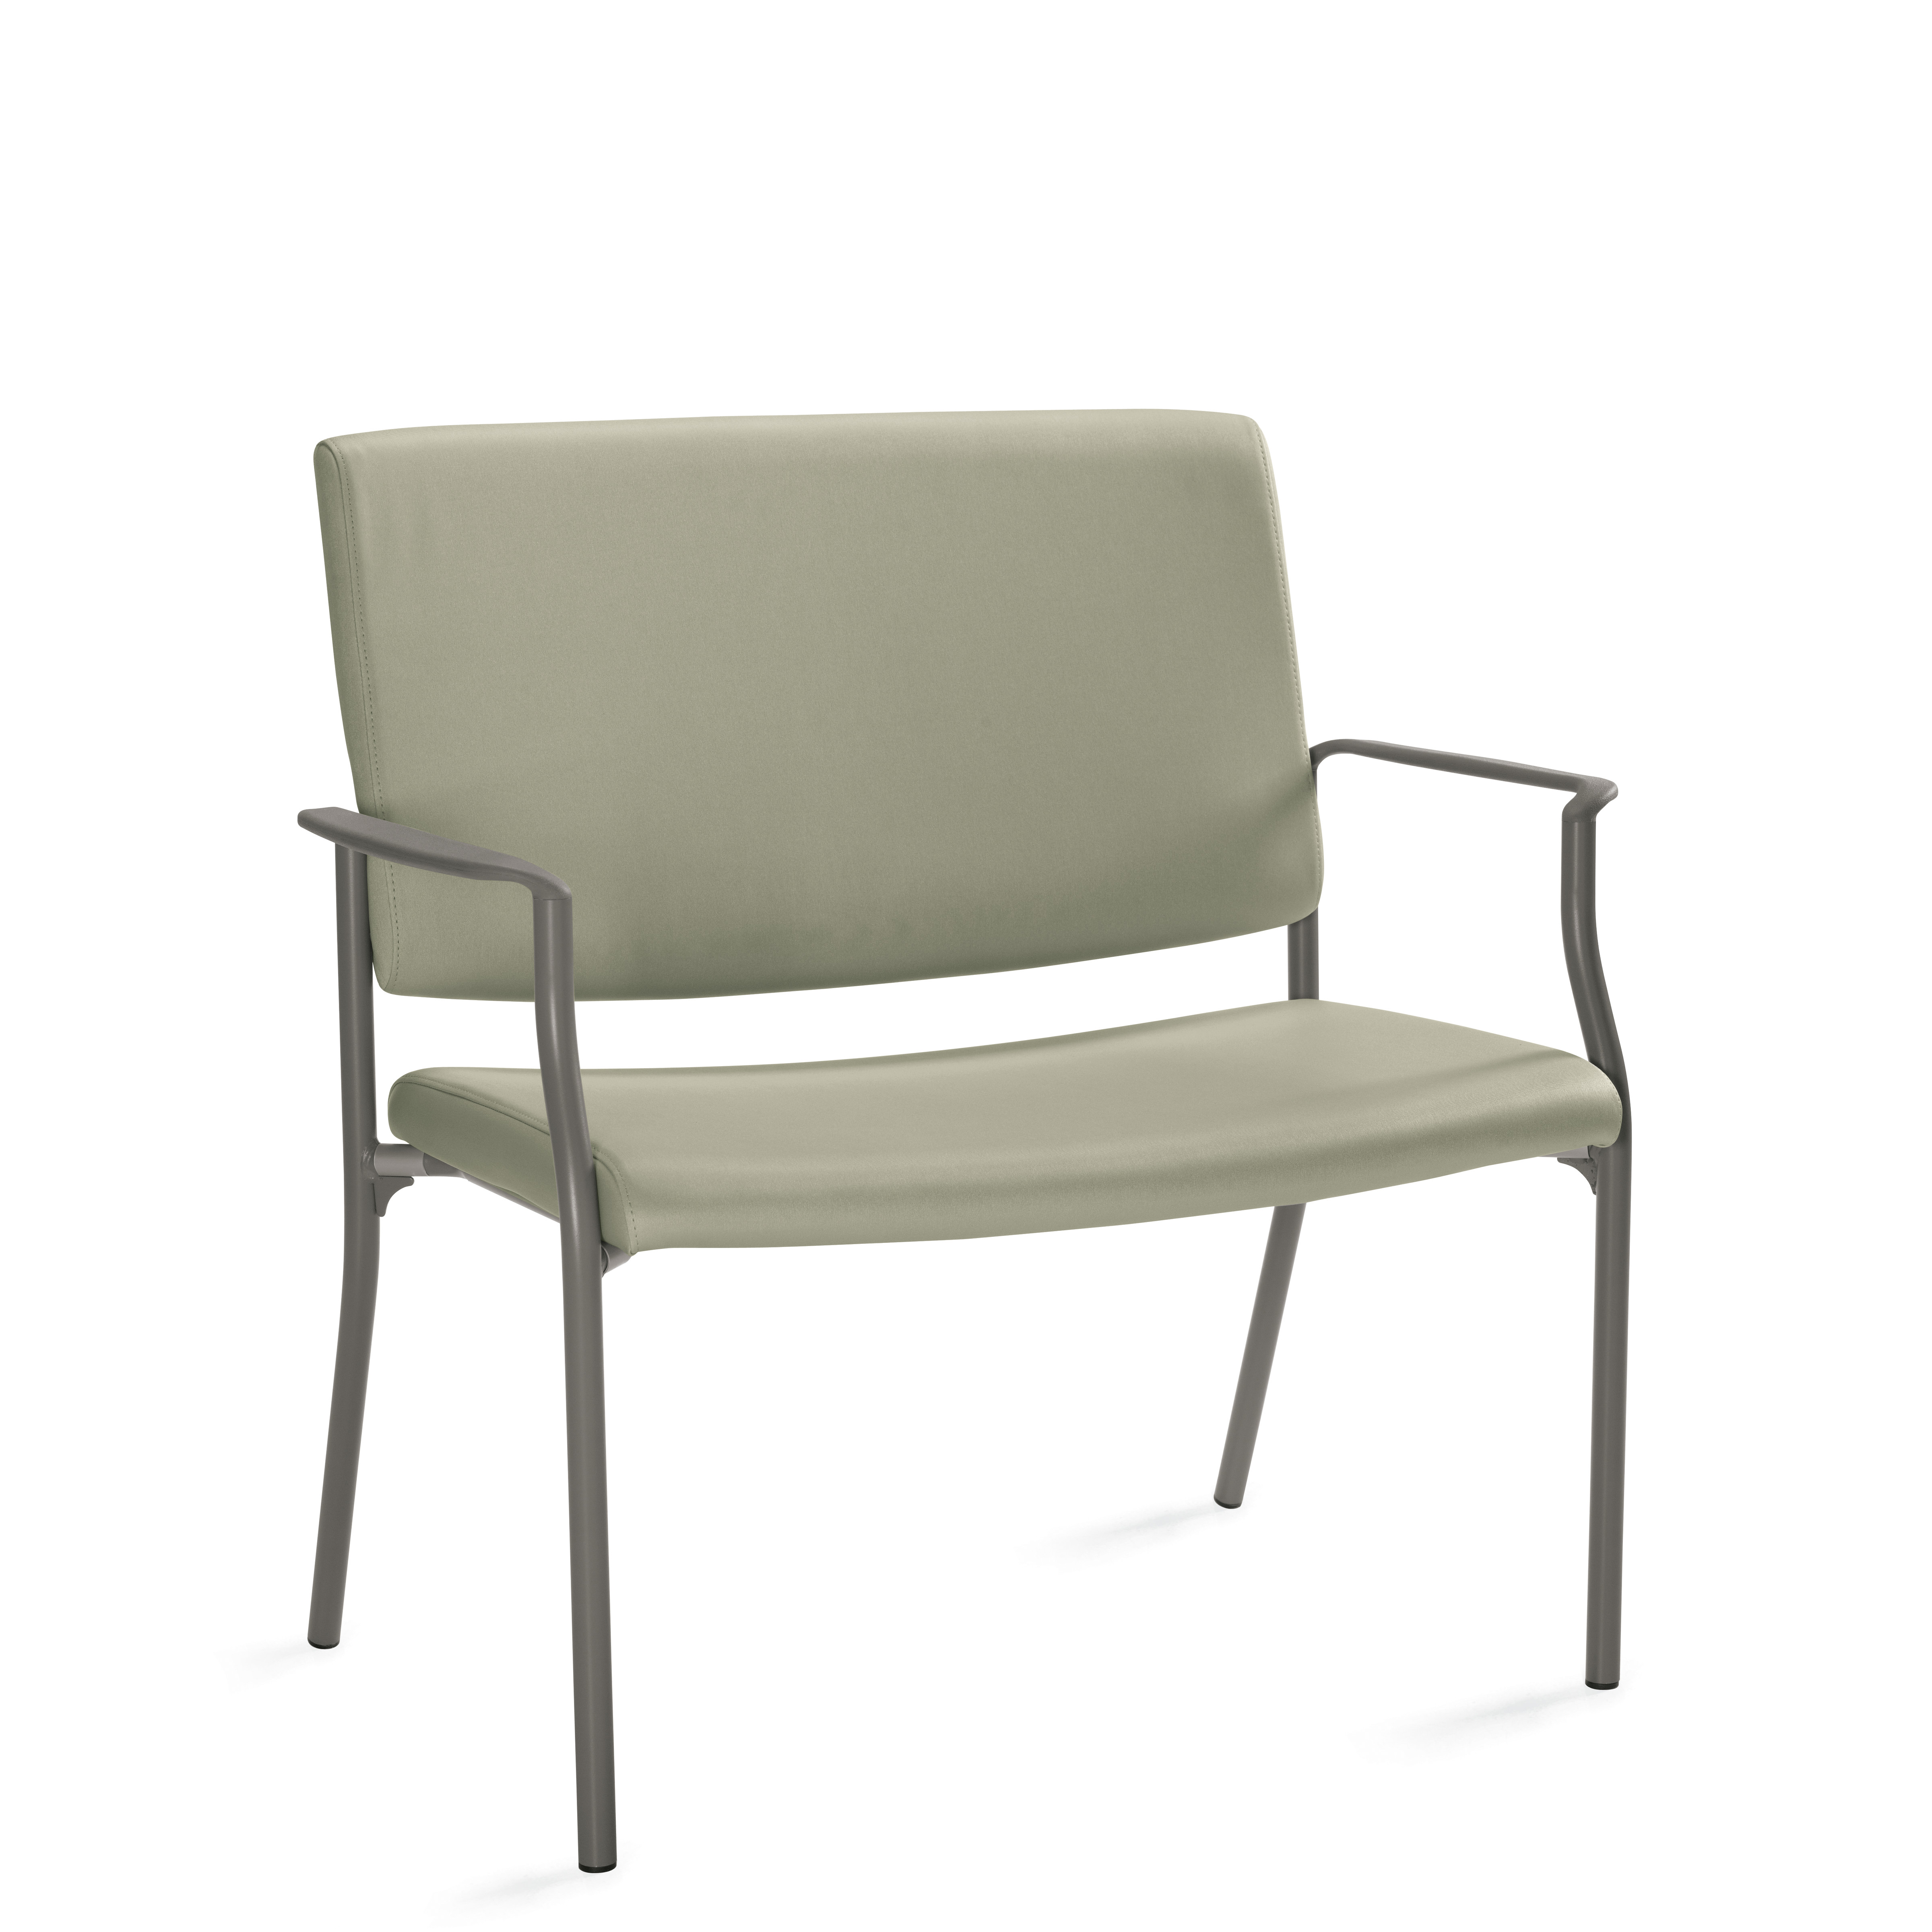 Global Care Frolick Bariatric Stacking Armchair With Concealed Back #GC3003